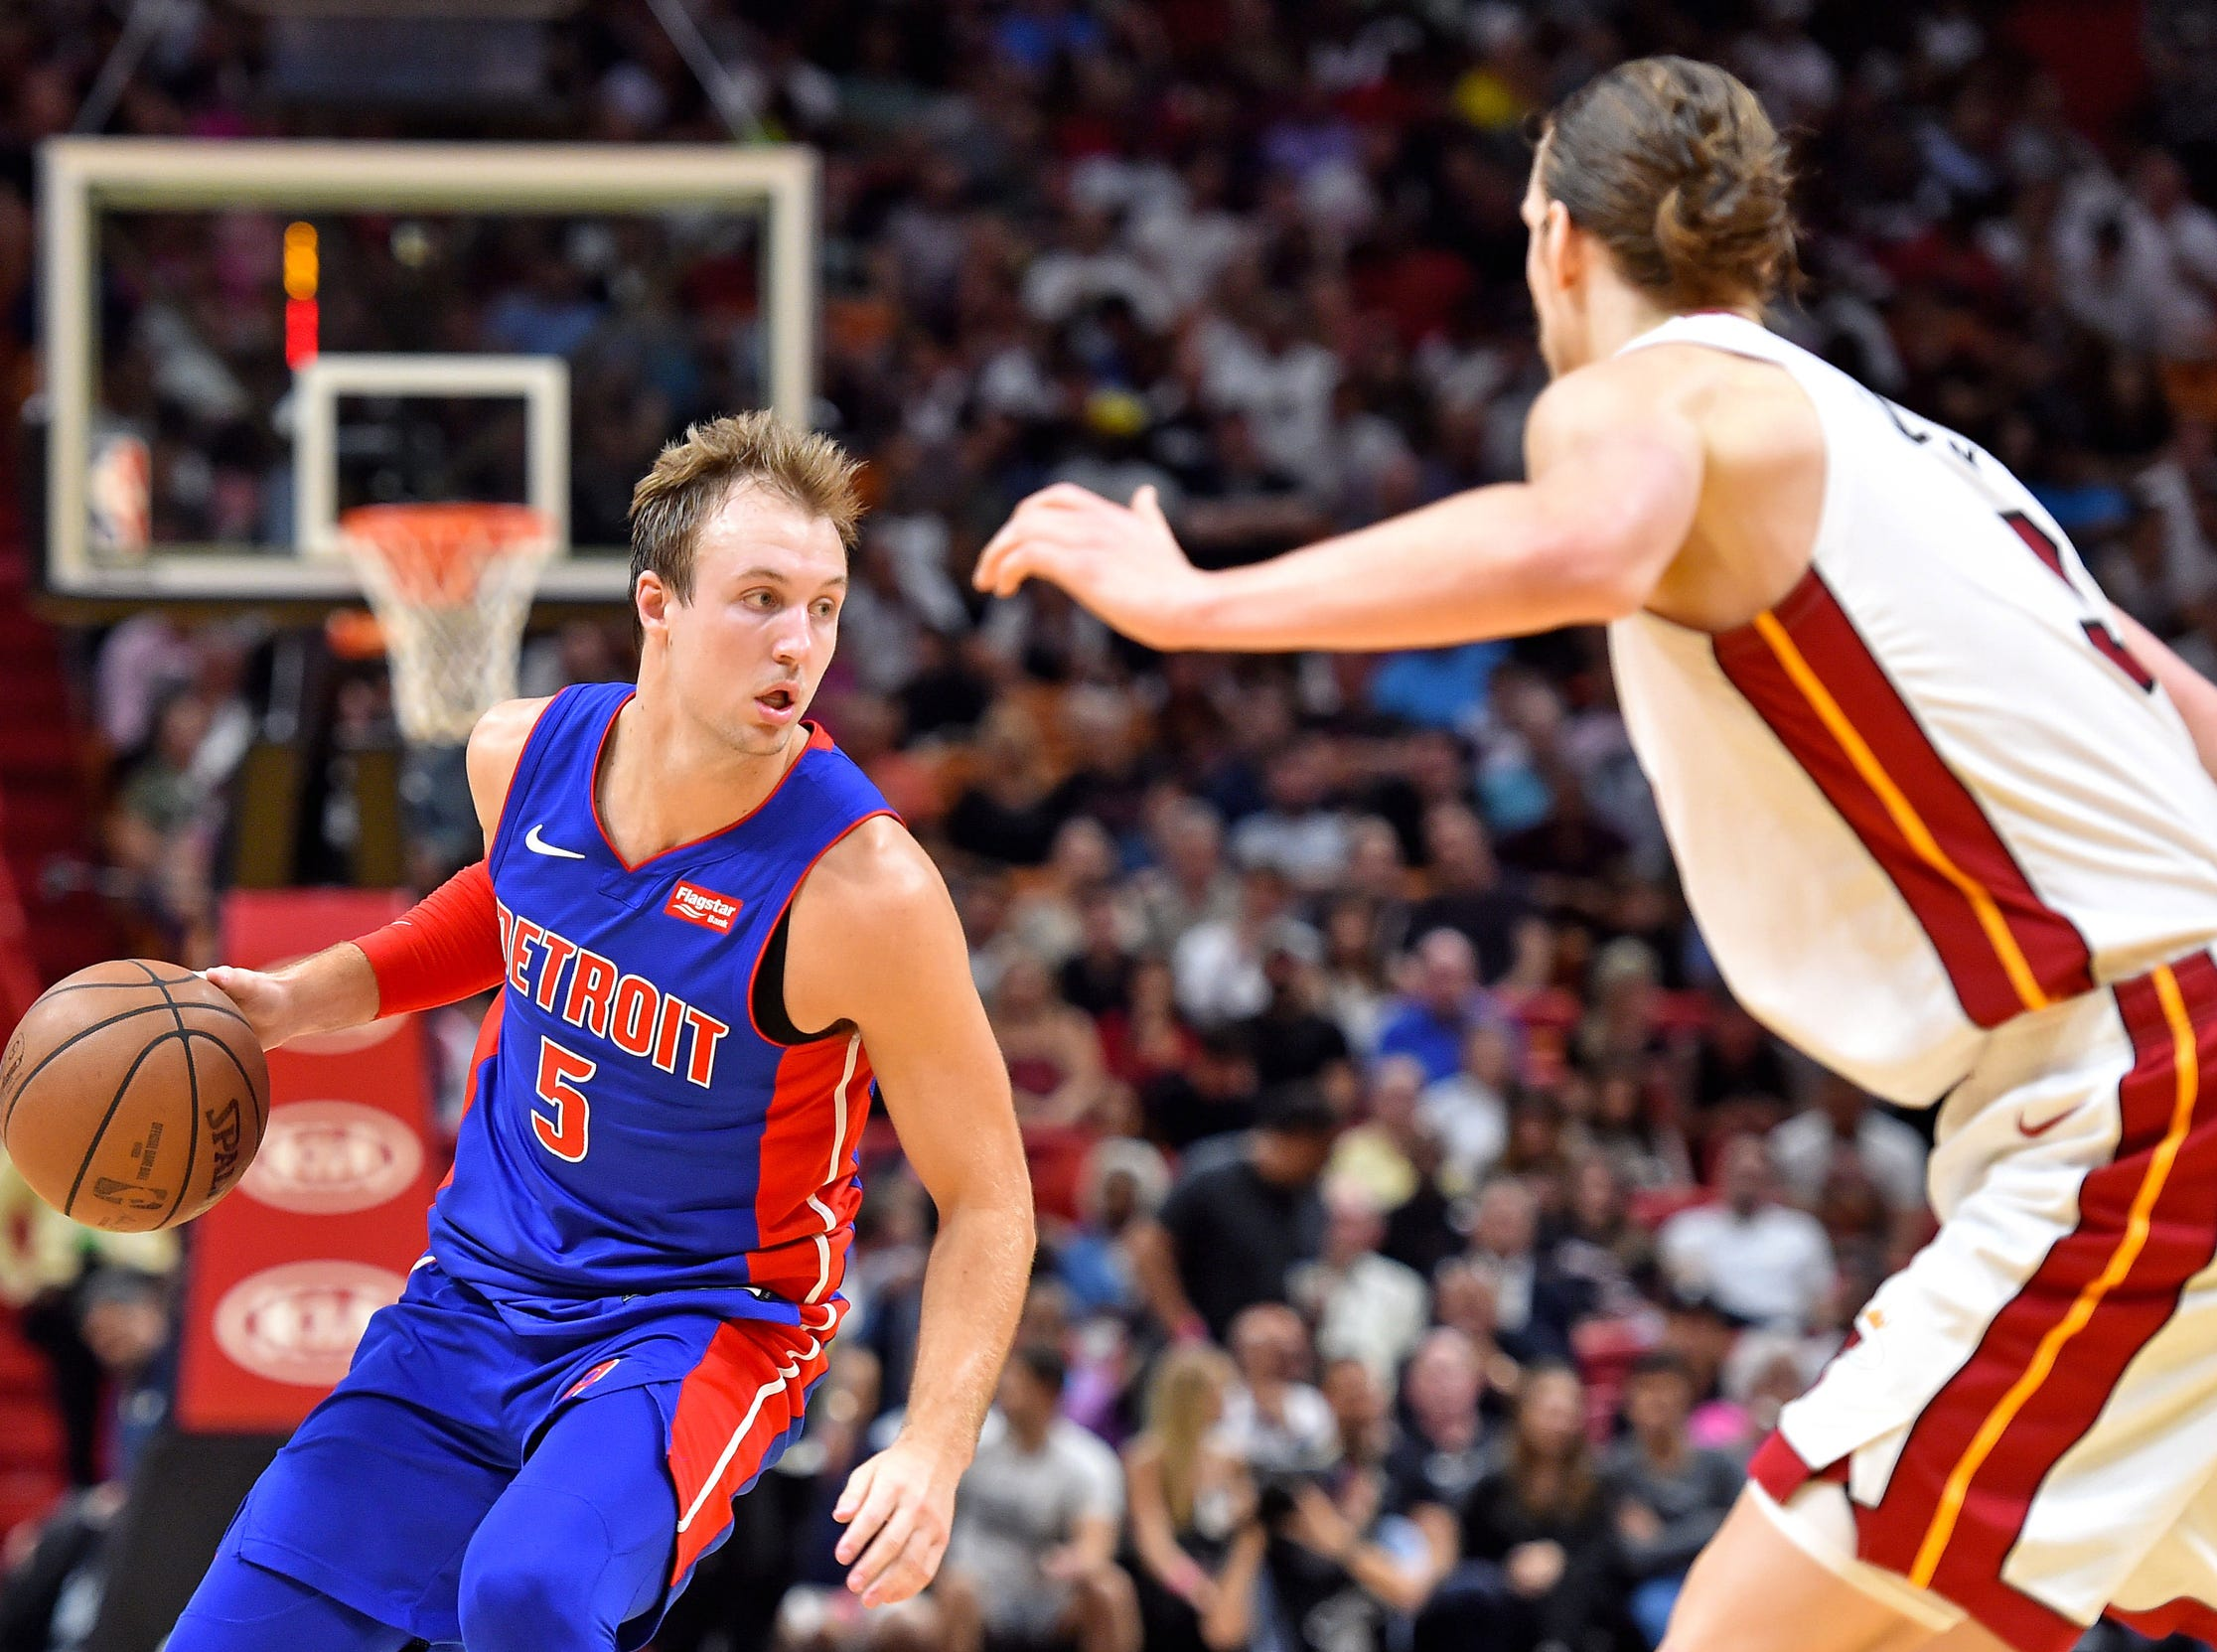 Miami Heat forward Kelly Olynyk (9) guards Detroit Pistons guard Luke Kennard (5) during the second half at American Airlines Arena on Wednesday, March 13, 2019.